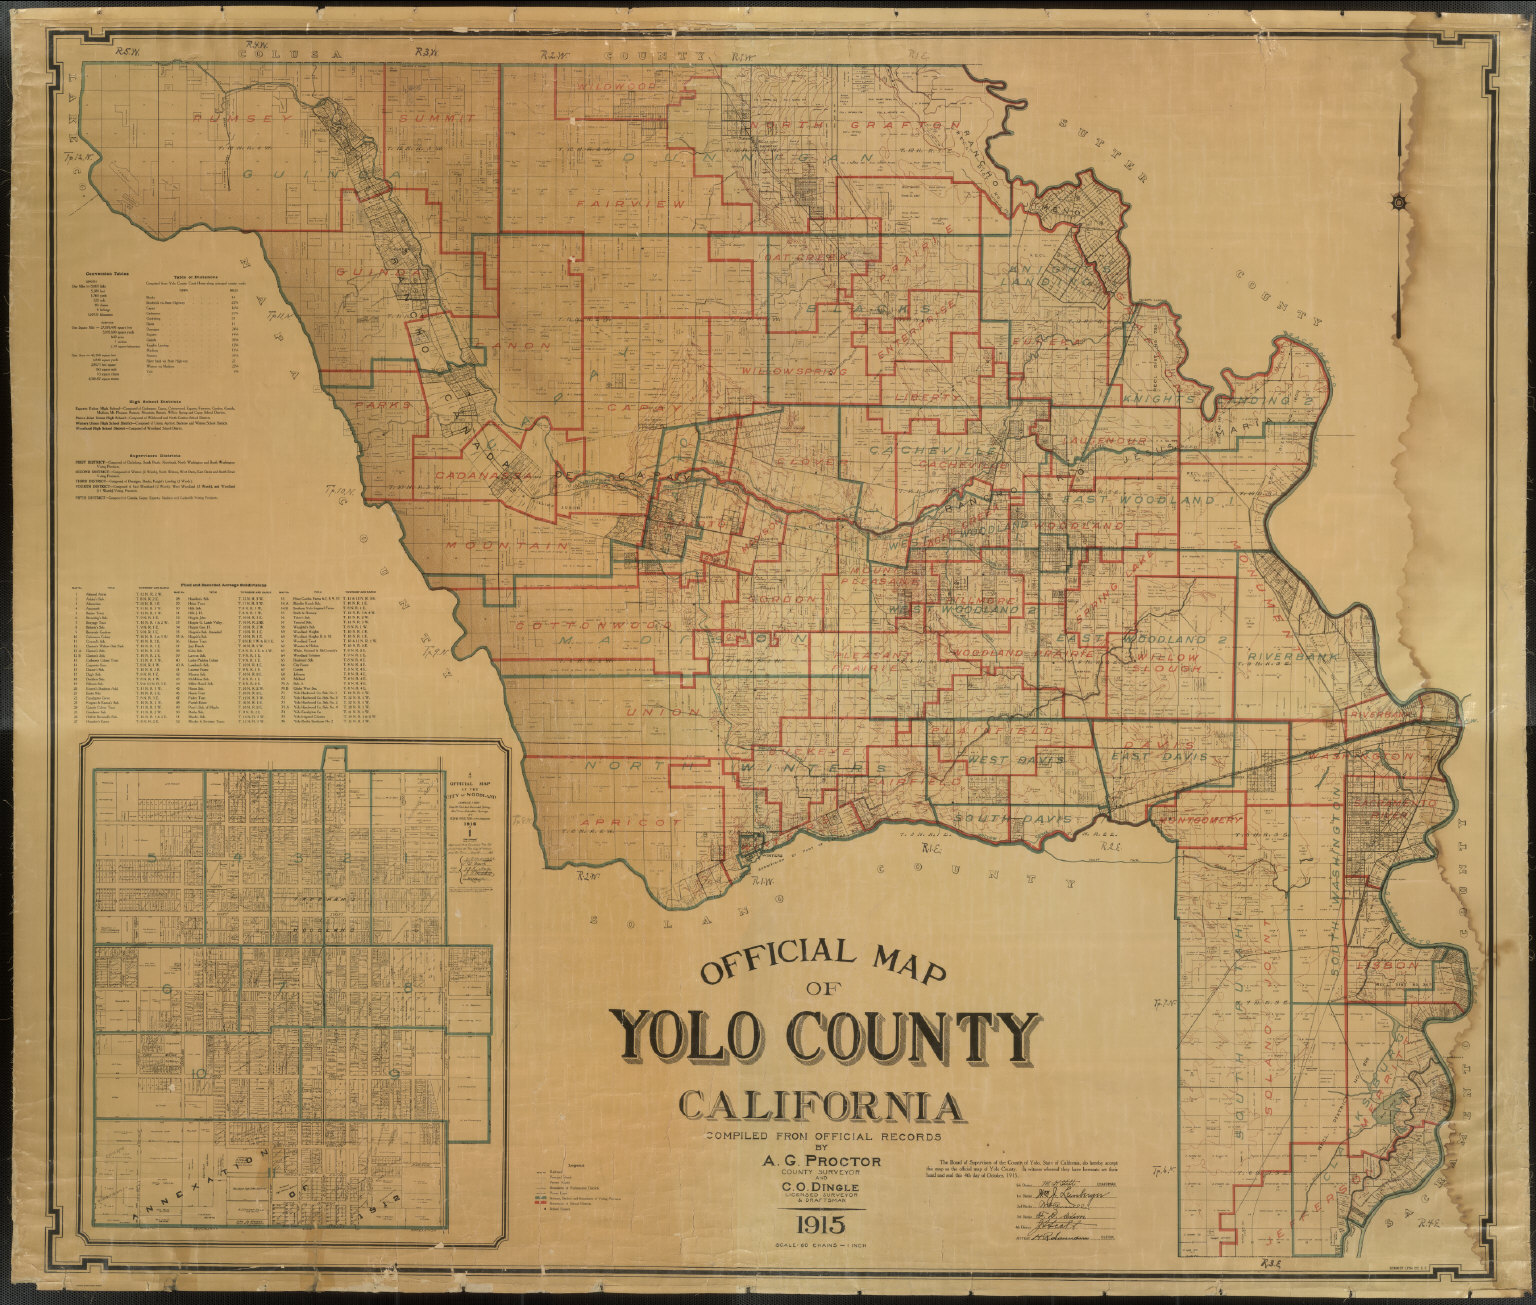 Official Map of Yolo County, California, 1915.   David Rumsey